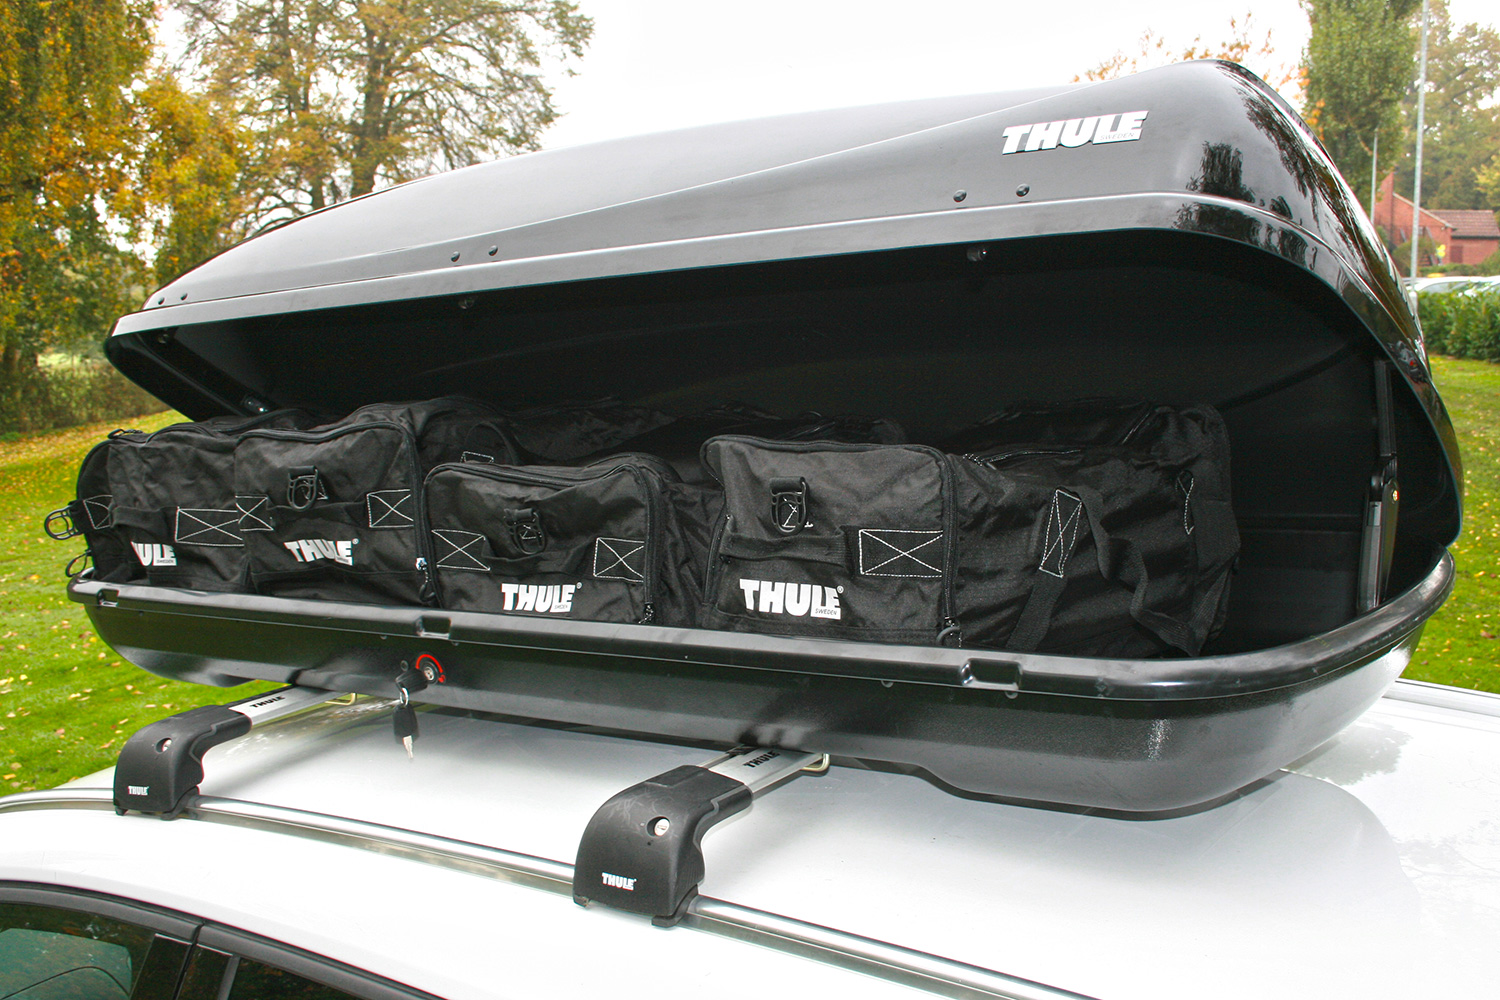 thule ocean 200 roof box. Black Bedroom Furniture Sets. Home Design Ideas